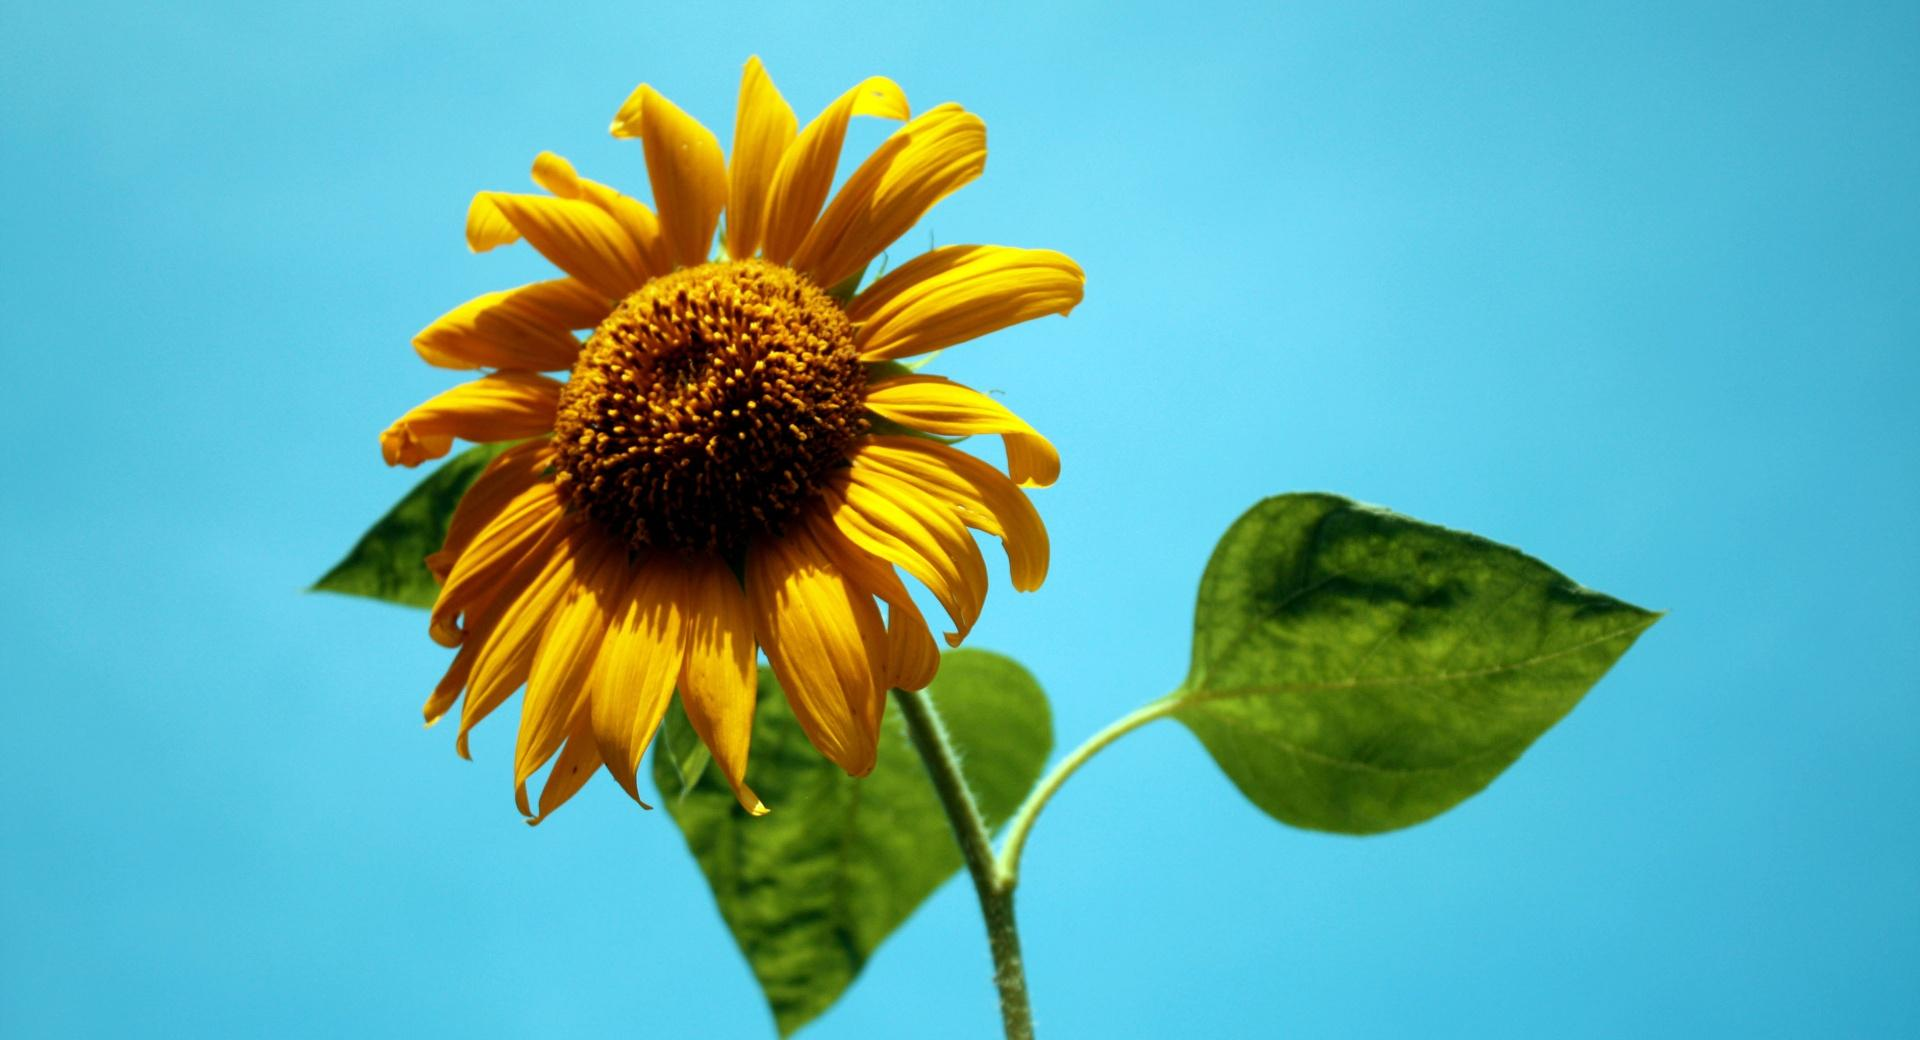 Sunflower Against A Blue Sky wallpapers HD quality